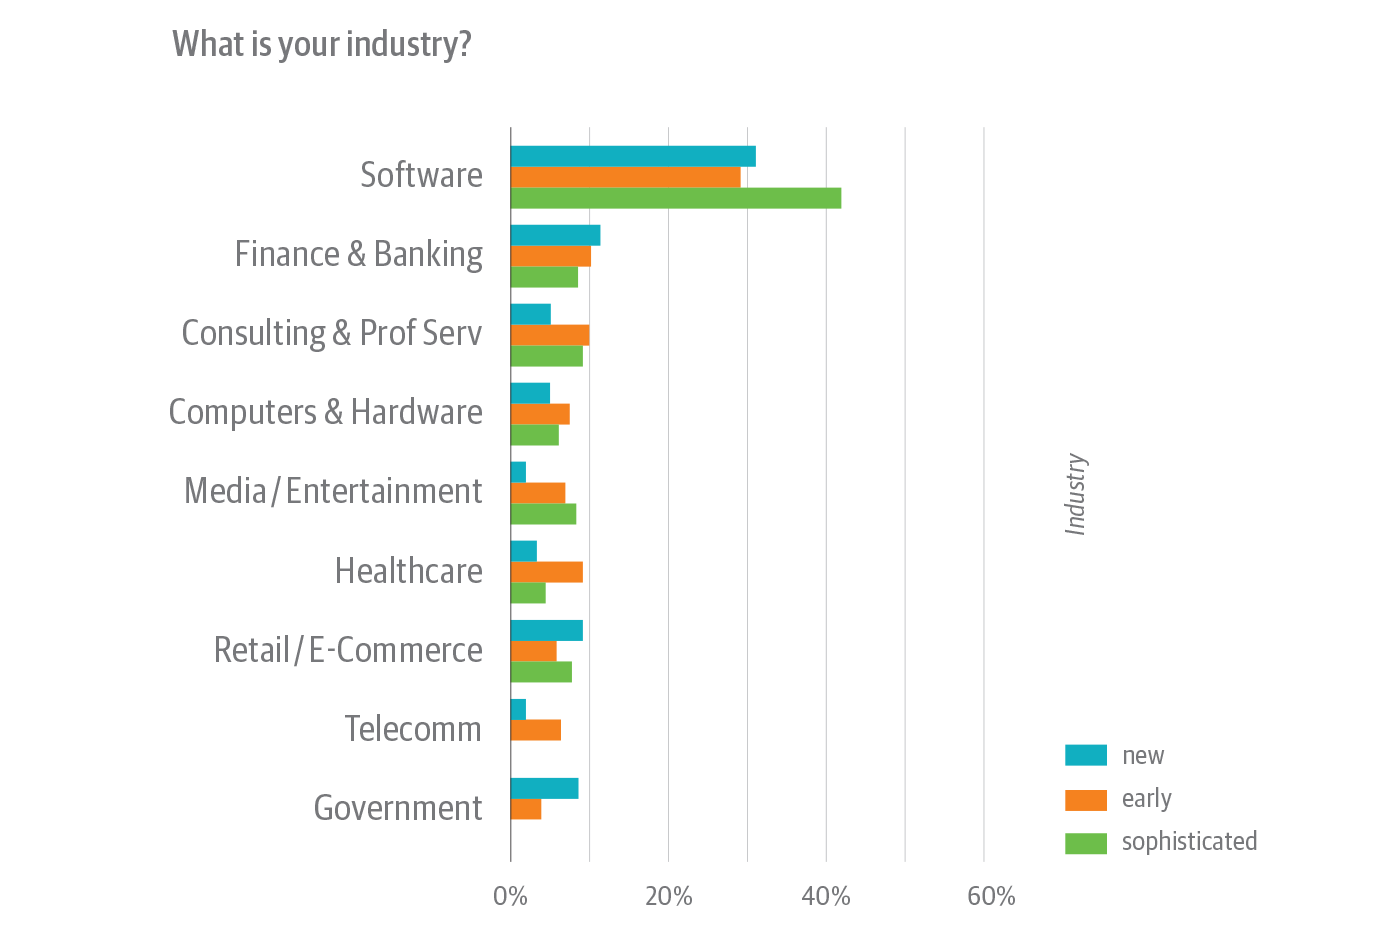 Industry of survey respondents, broken down by cloud native experience level